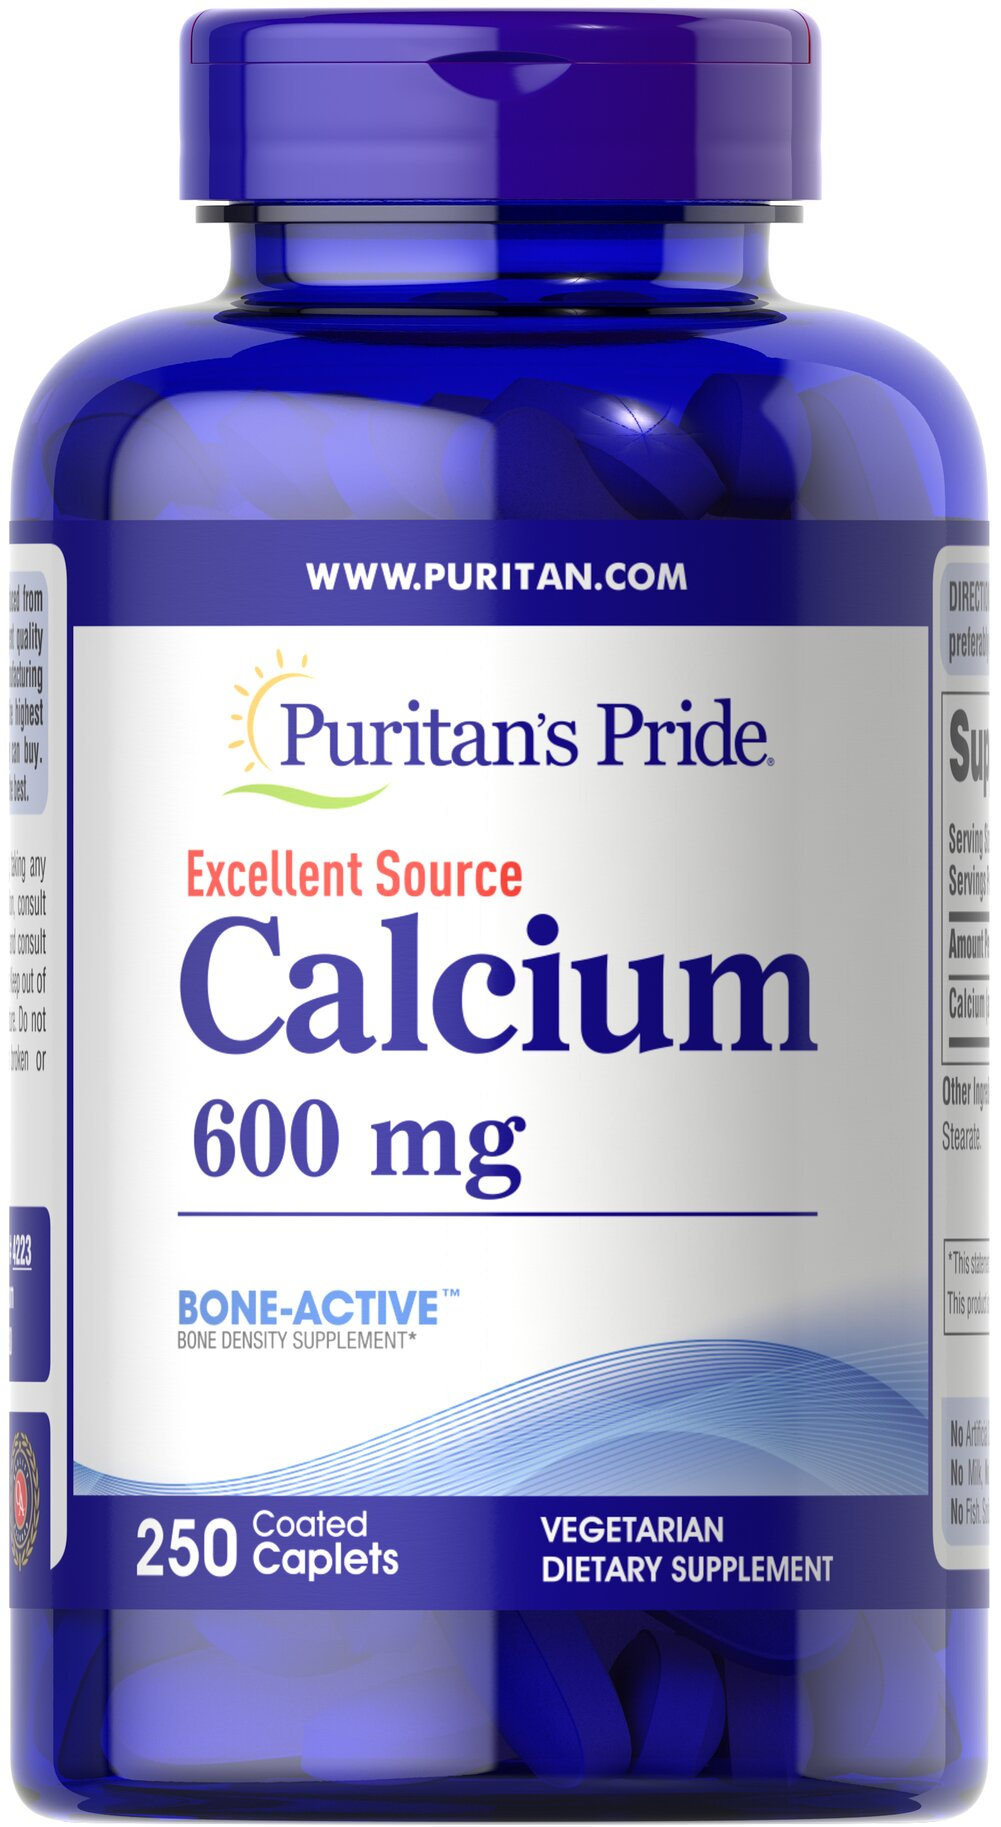 Calcium Carbonate 600 mg <p>Supports Bone Health**</p><p>Many factors contribute to the development of osteoporosis including sex, race, age, and hormonal status. It's important to remember that everyone loses bone mass with age. Regular exercise, a healthy diet and adequate Calcium intake helps maintain good bone health and may reduce the high risk of osteoporosis later in life.</p> 250 Coated Caplets 600 mg $18.53